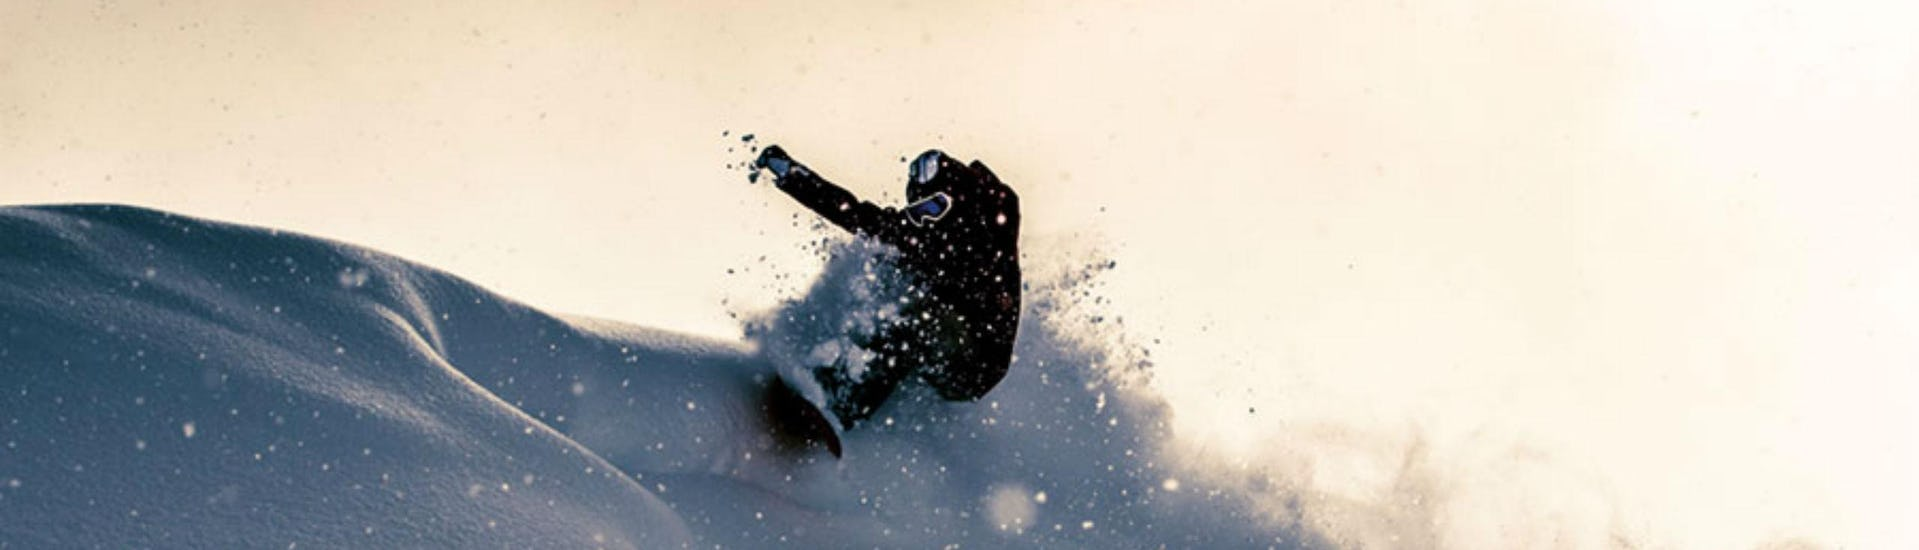 A snowboard instructor from Board.at is doing some freestyle tricks in the powder snow.